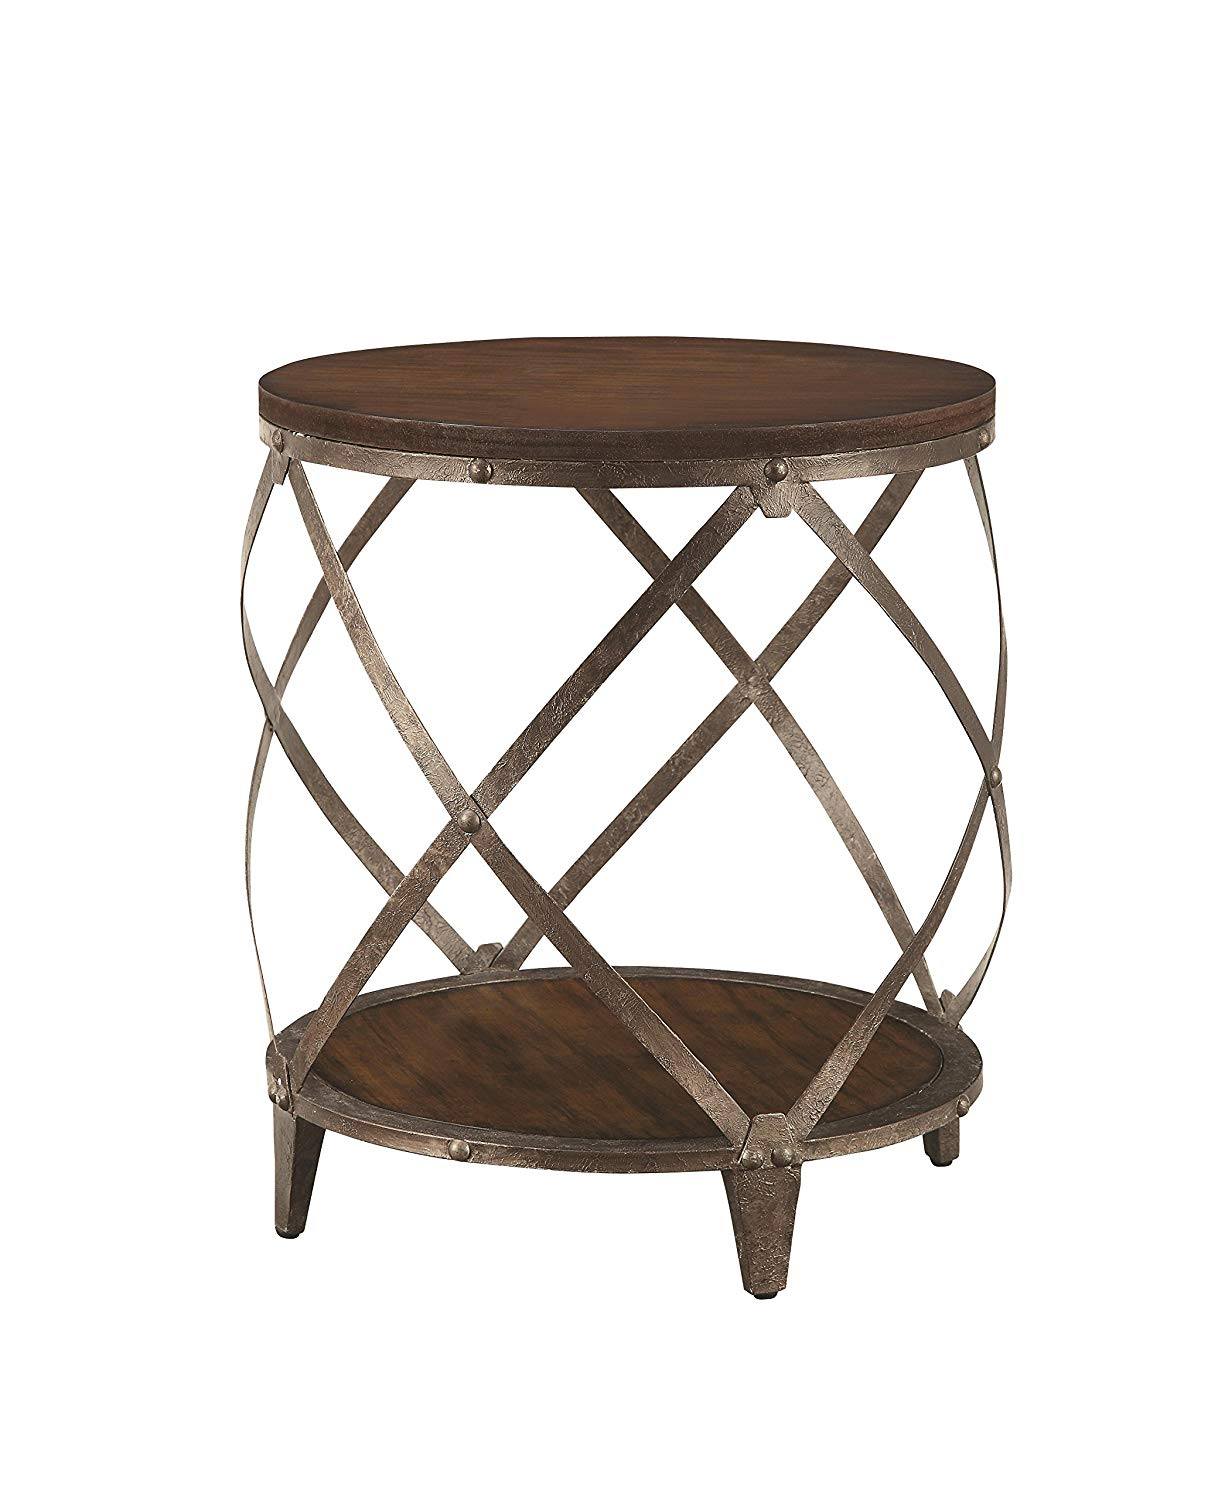 metal accent table with drum shape brown kitchen dining contemporary tables outside lawn chairs grills carpet edge strip wicker furniture set clearance throne seat only black